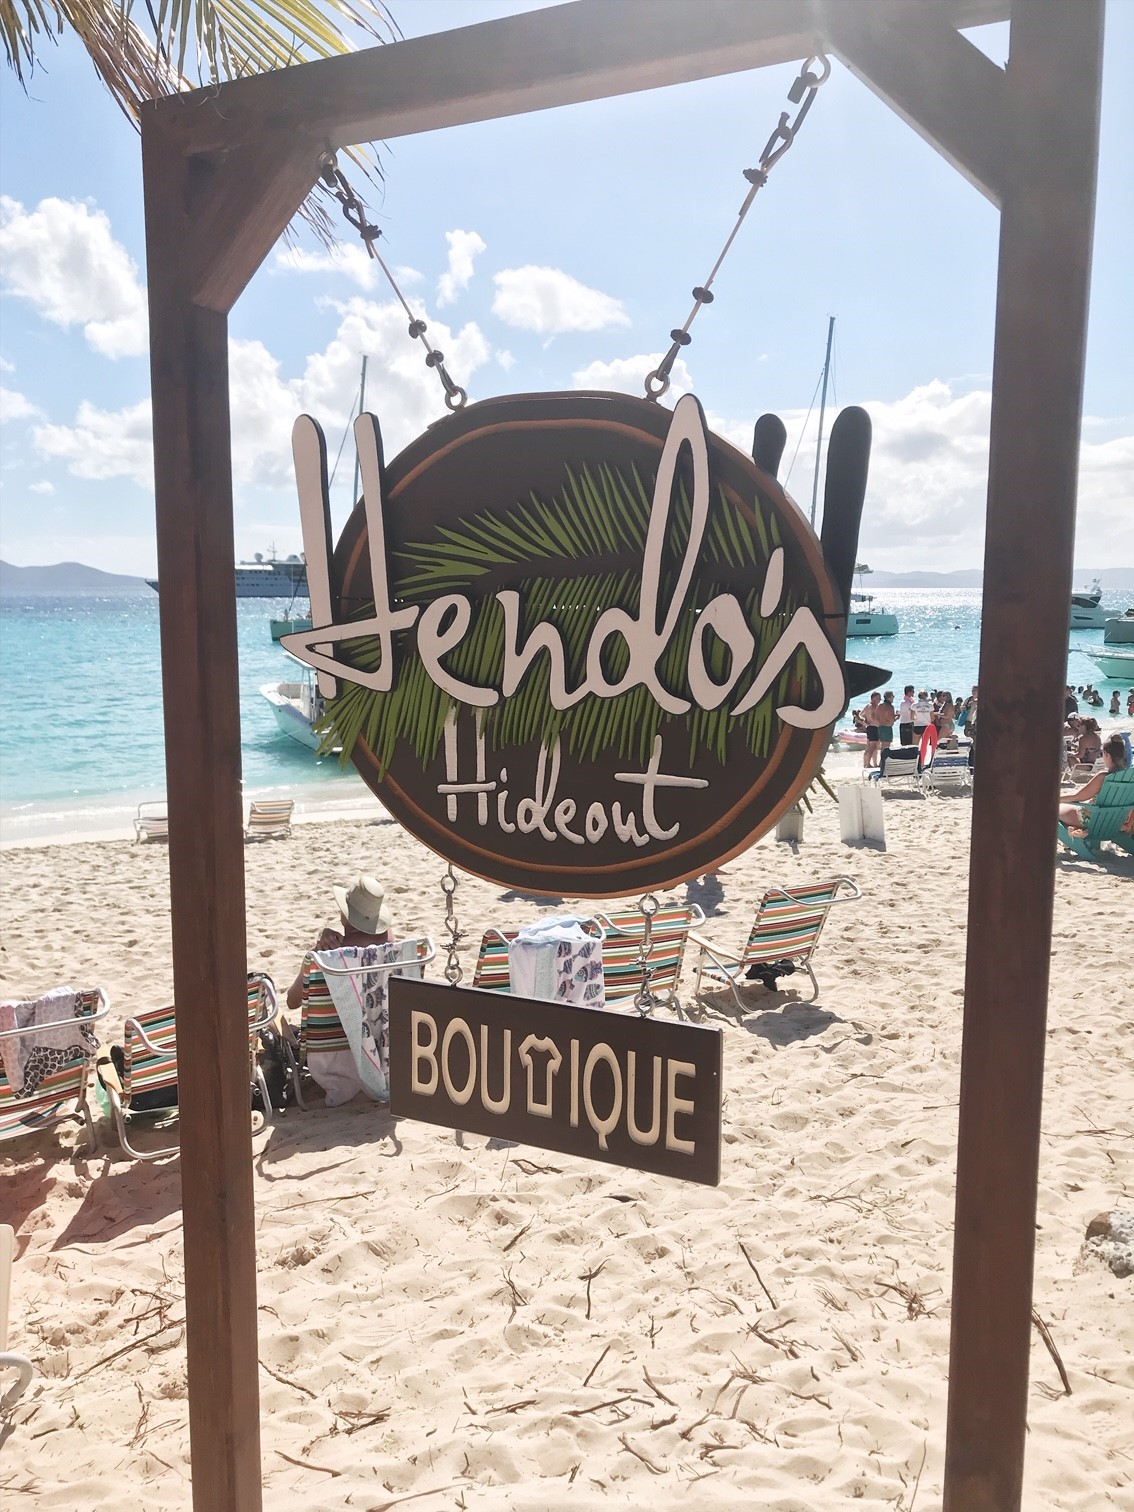 BVI Restaurant Guide - Where to eat out in the British Virgin Islands - Hendo's Hideout, Jost van Dyke